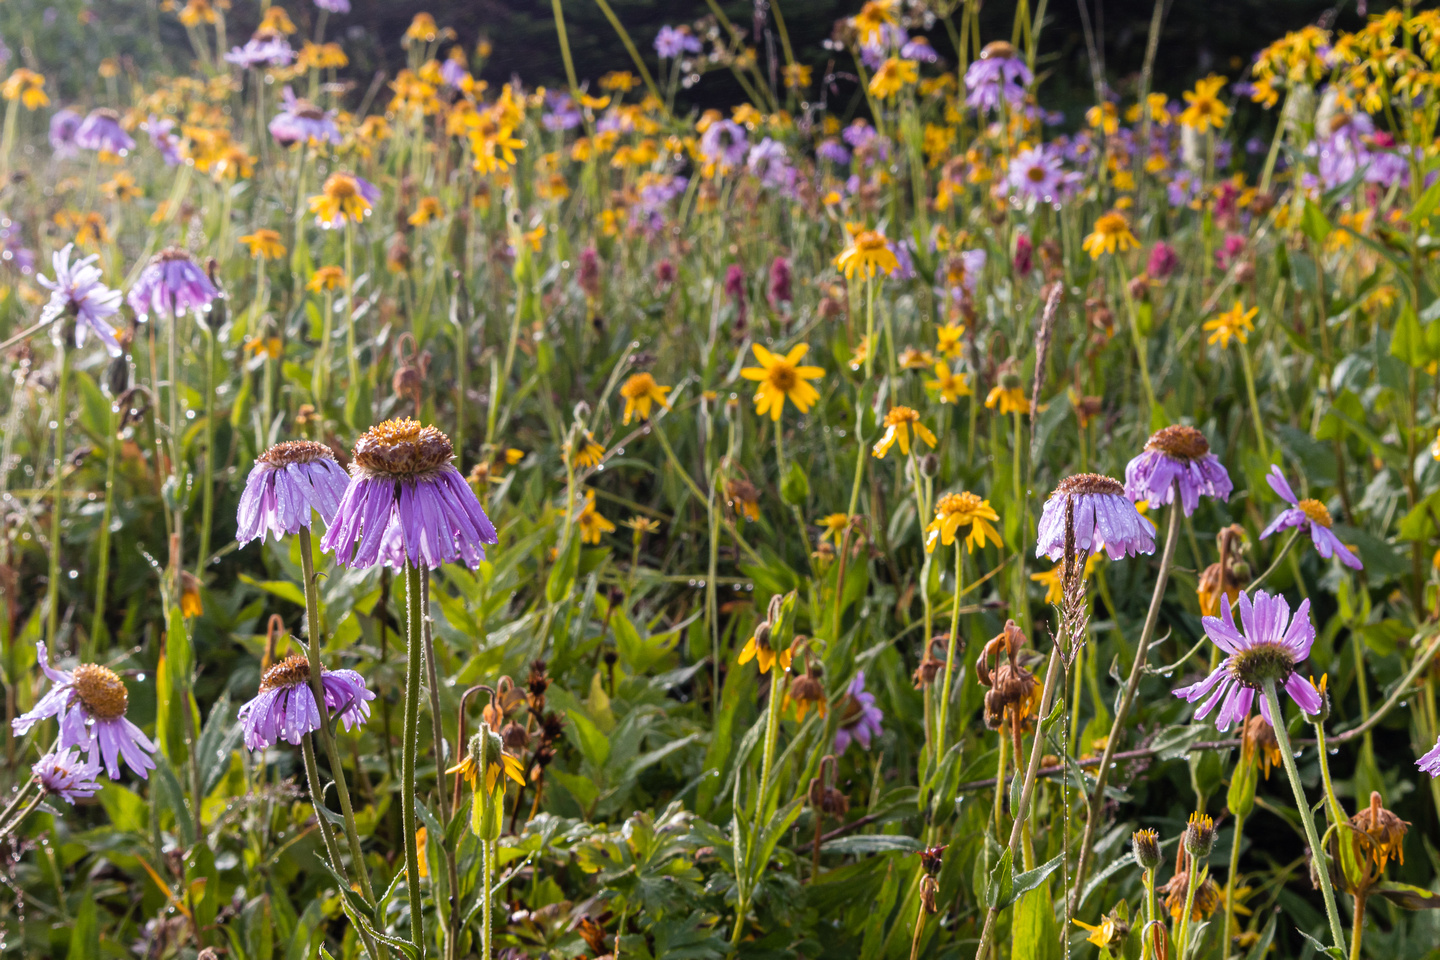 My mood improves with the wildflower display in the Molar Meadows.